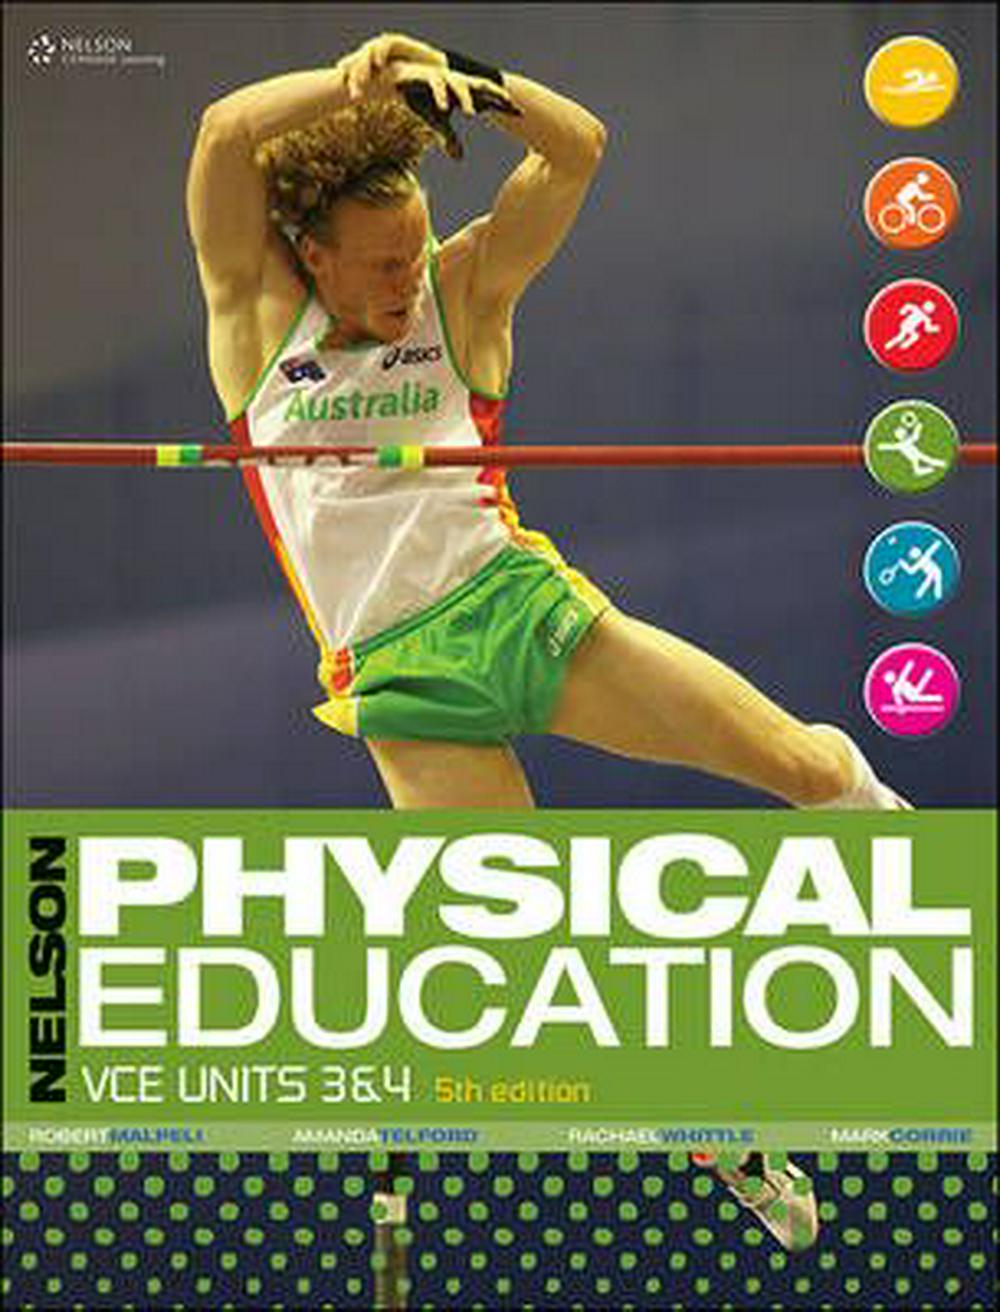 Nelson Physical Education VCE Units 3&4 Student Book Plus Access Card for 4 Years